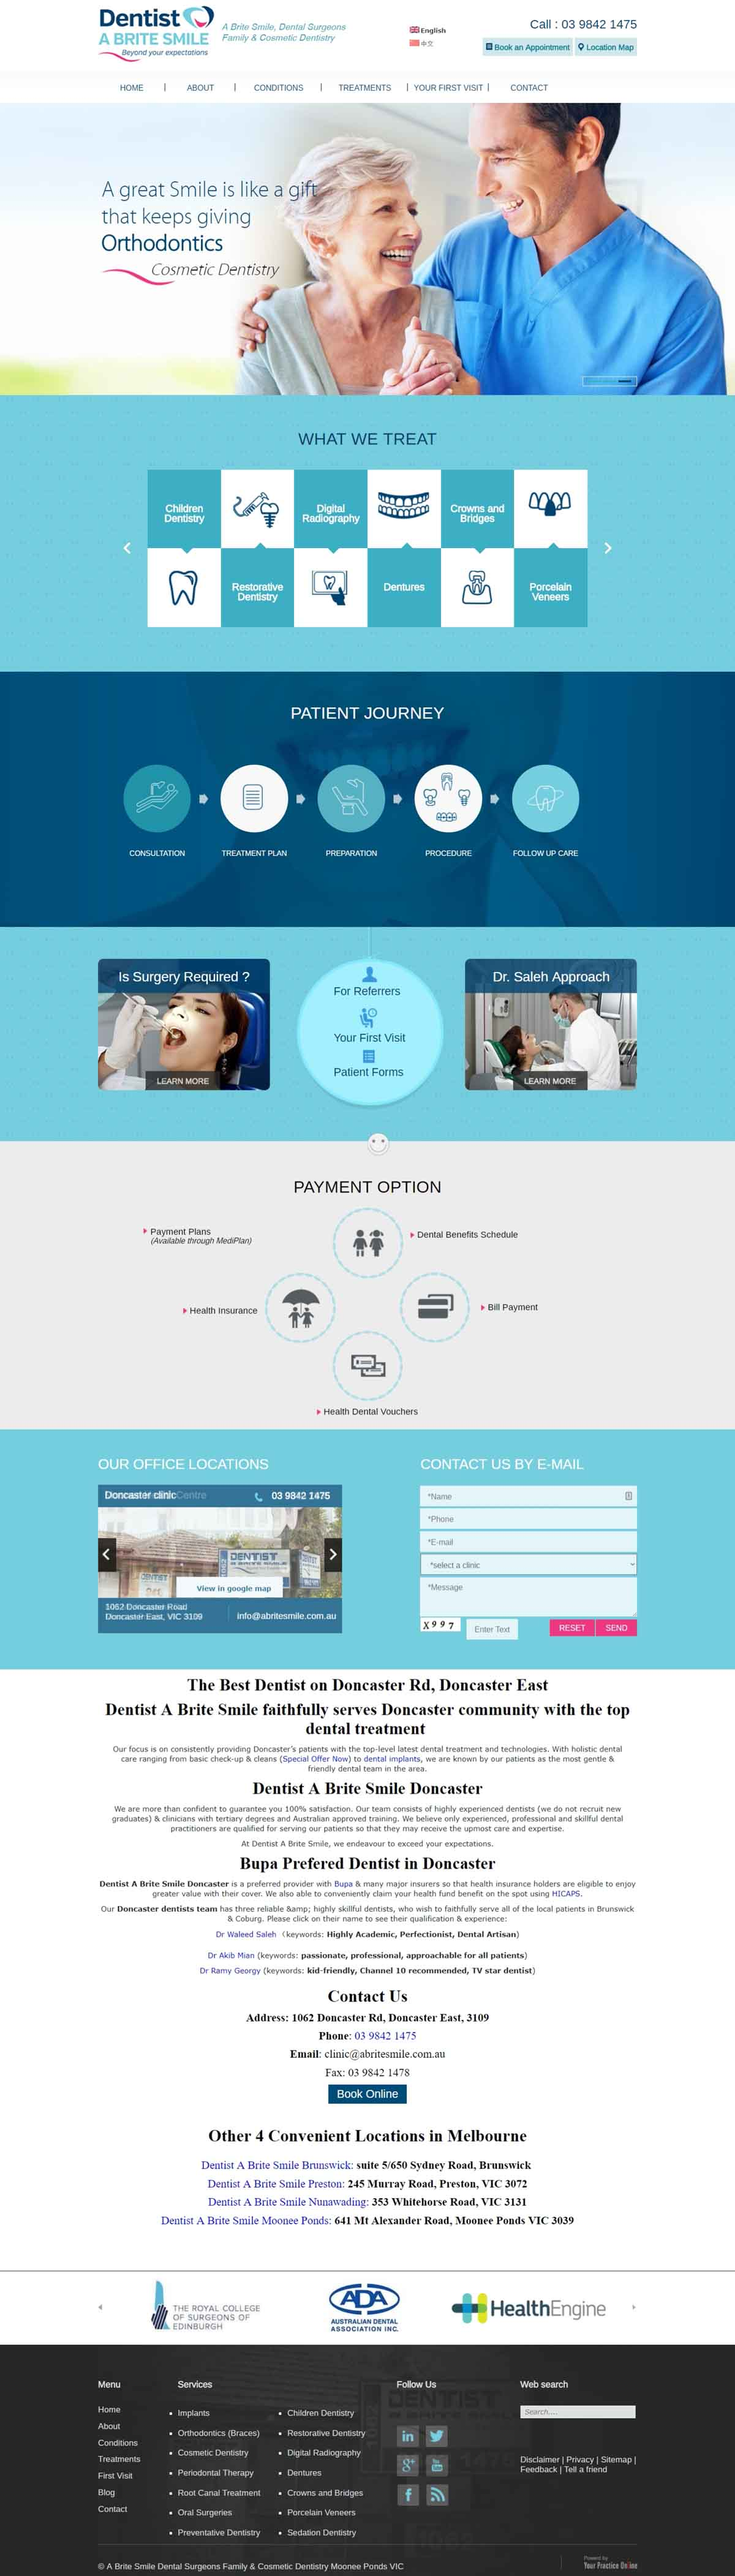 Website for Dental Surgeons